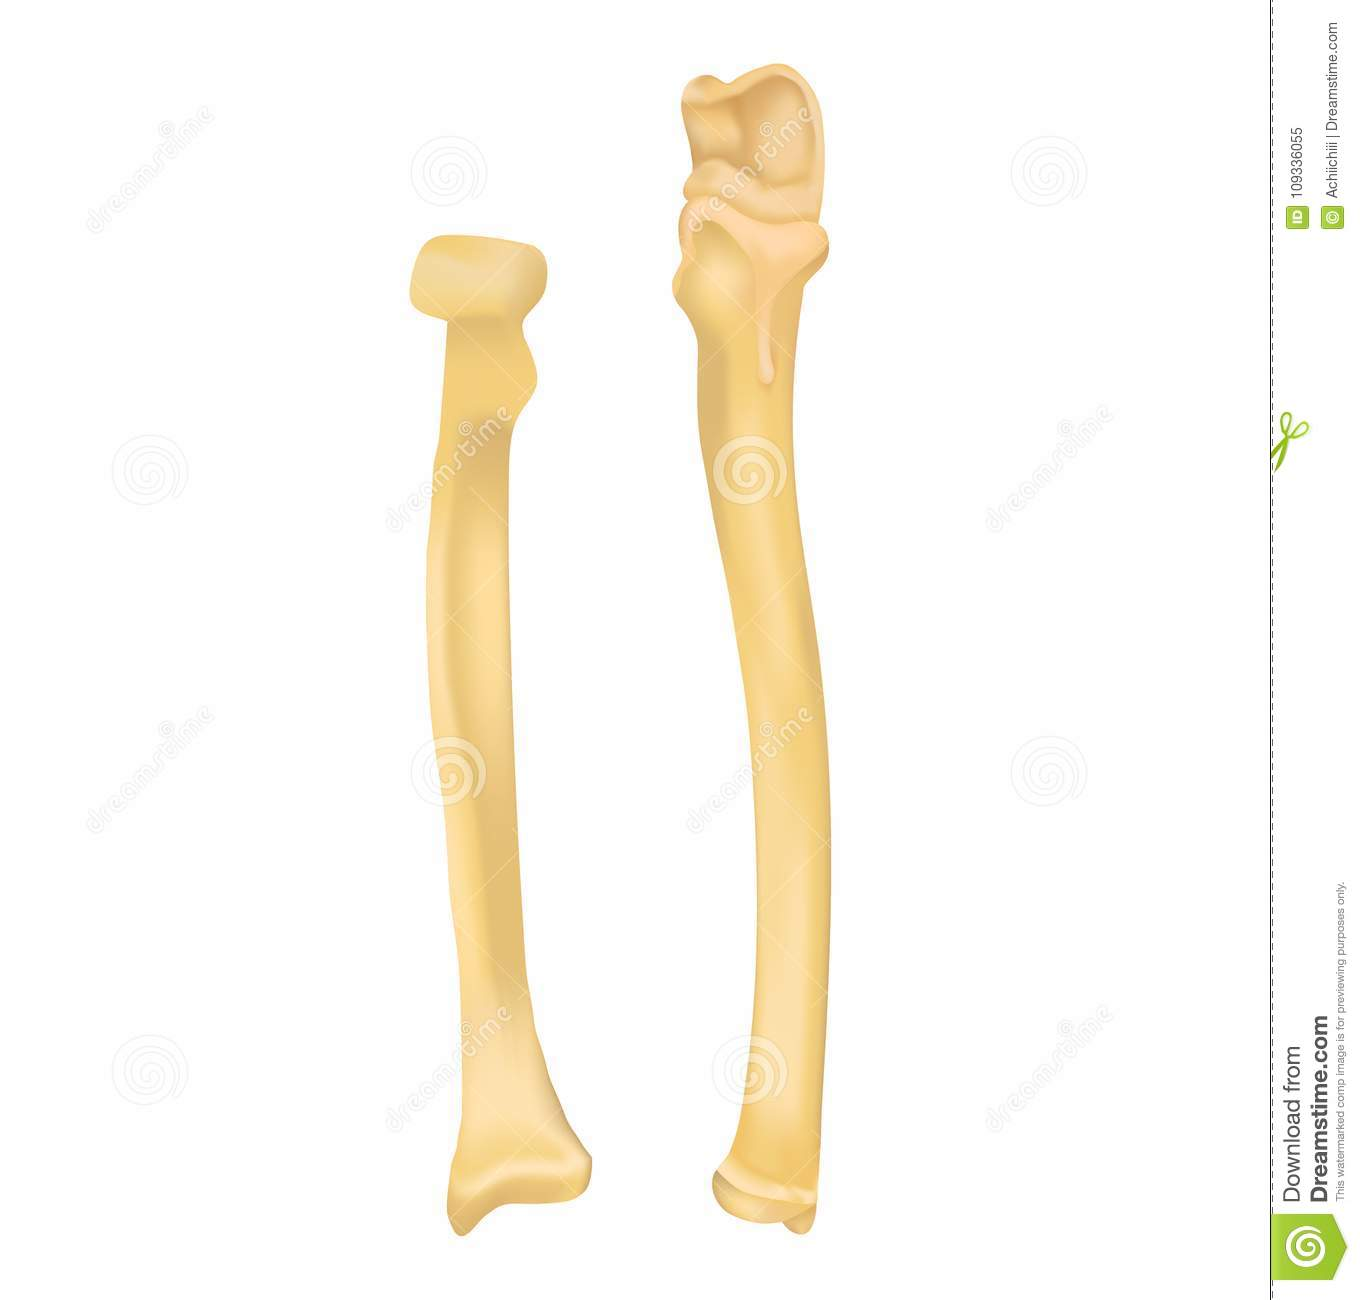 Radius and ulna bone stock vector. Illustration of human - 109336055